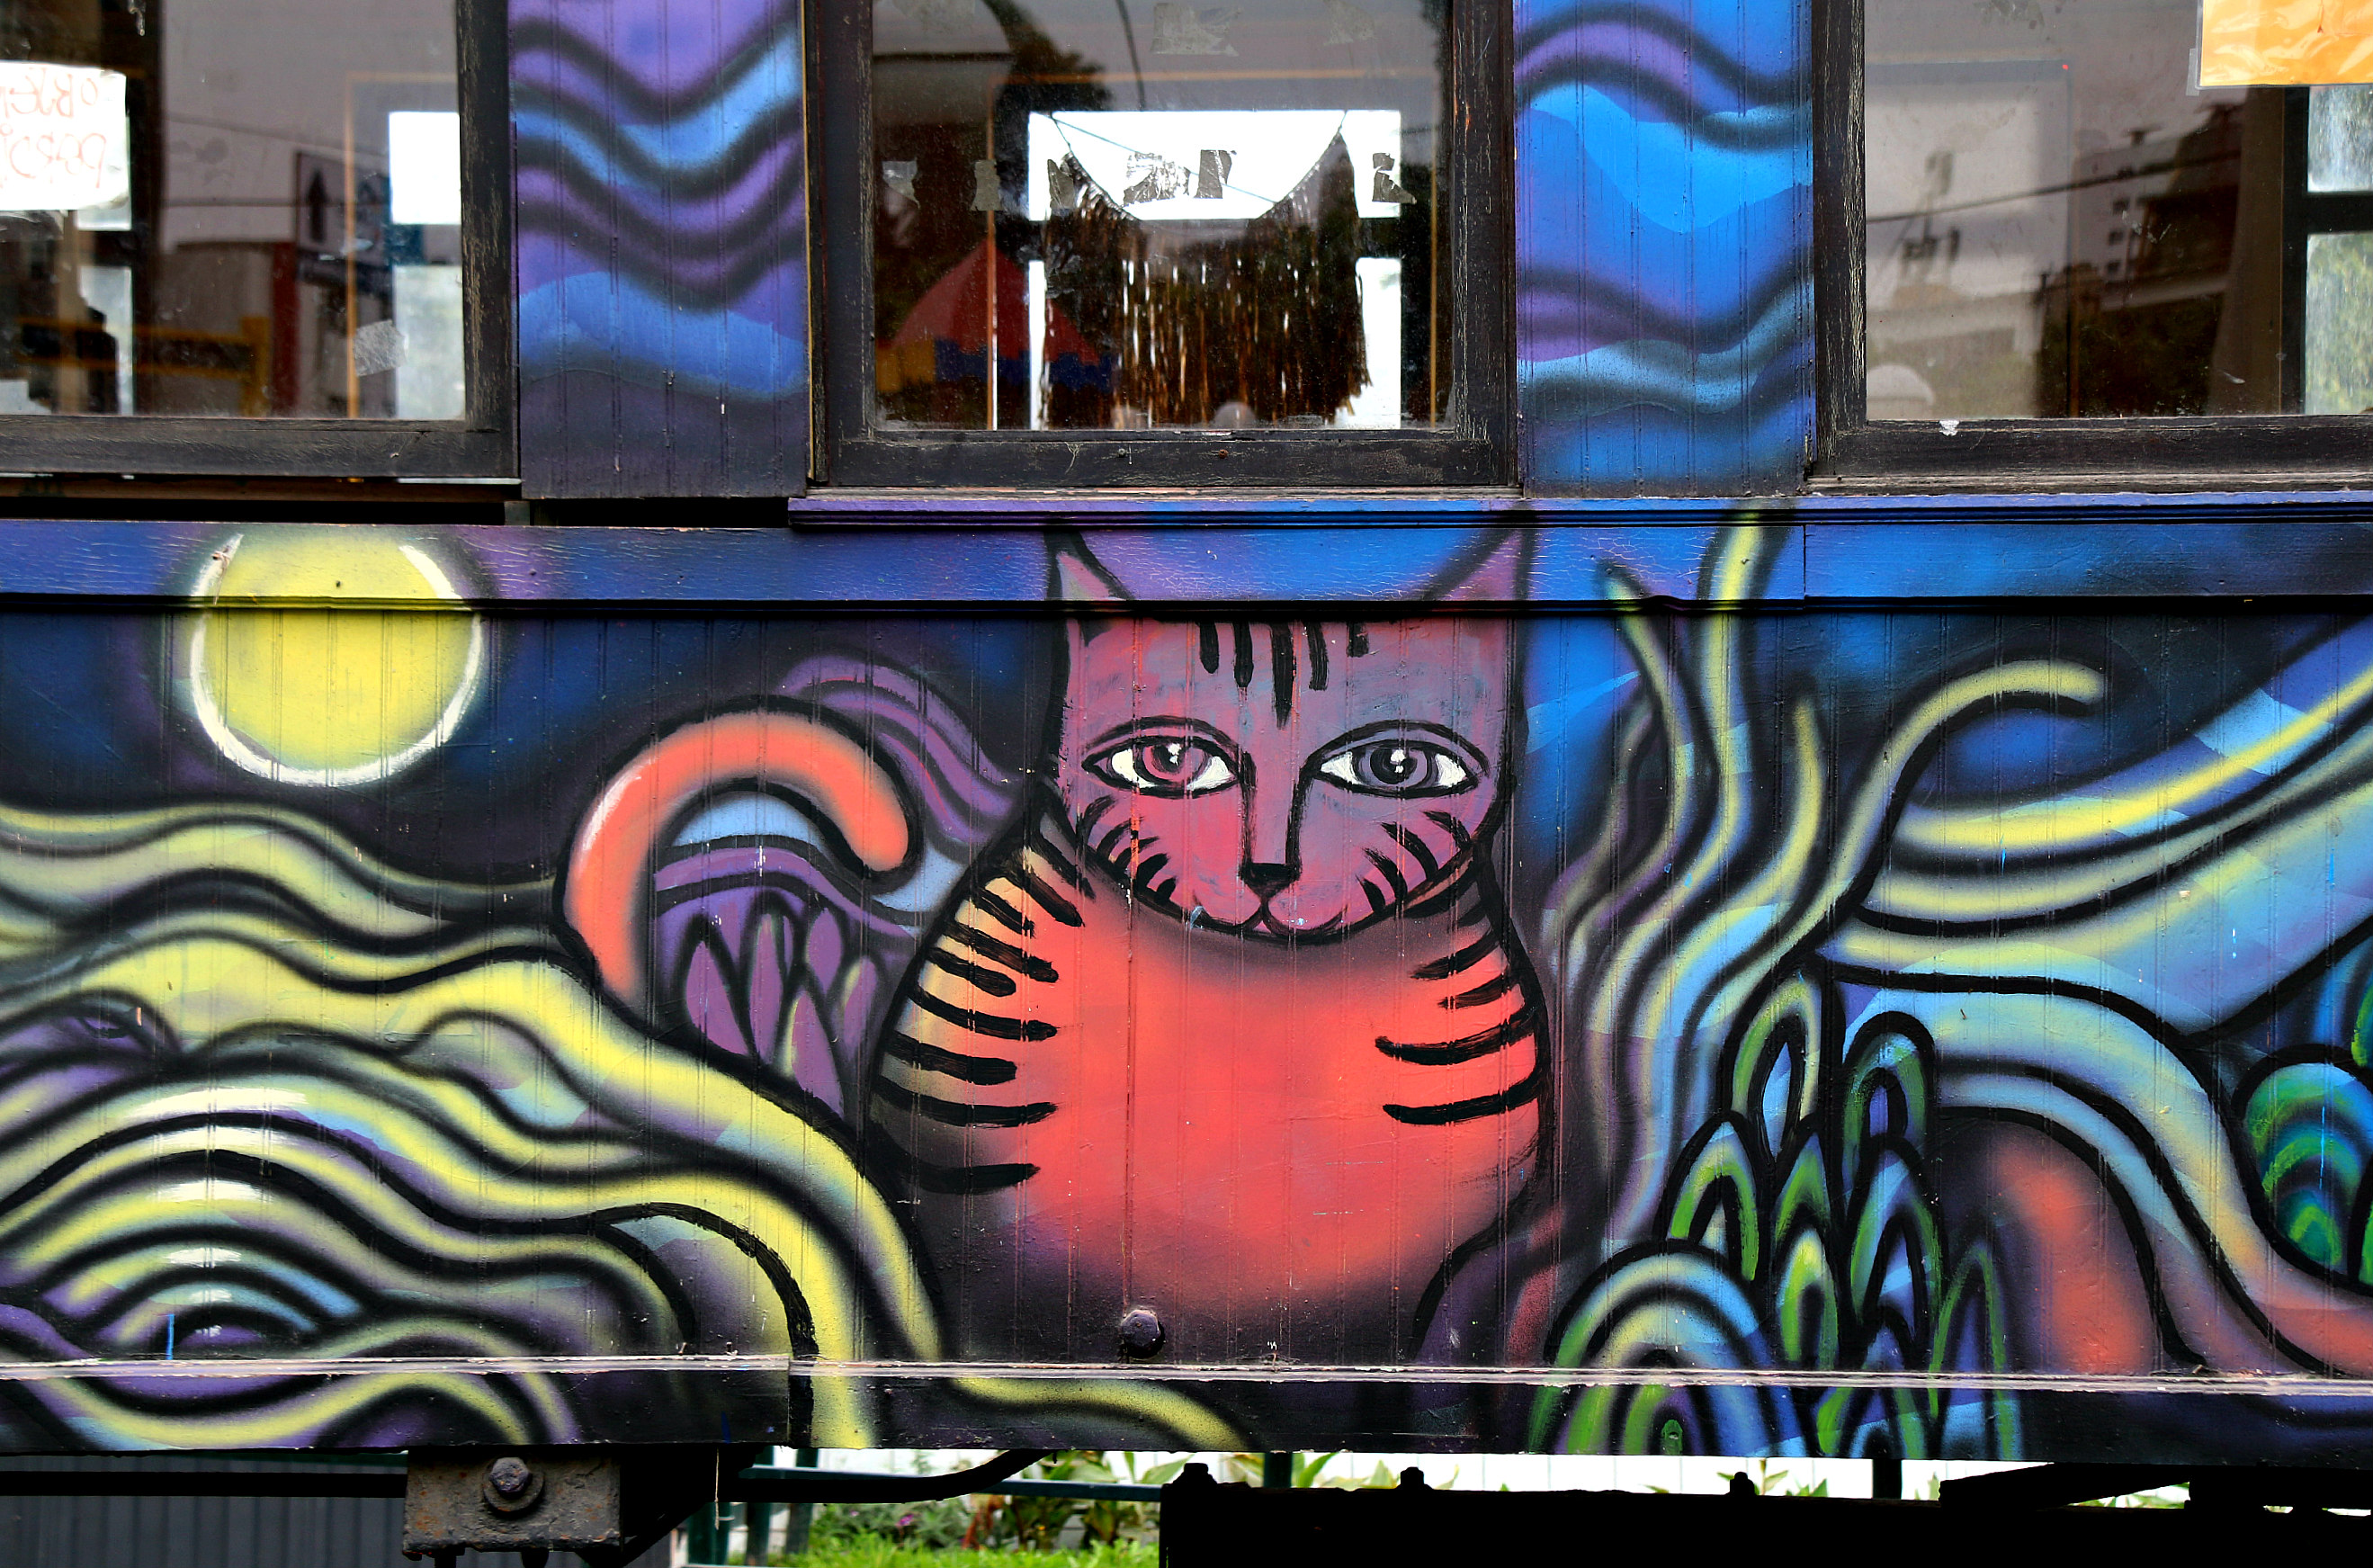 where to to find street art in Barranco, Lima cat bus by Los Salvajes aka Roberto Peremese, Nemo, Jimbo 3